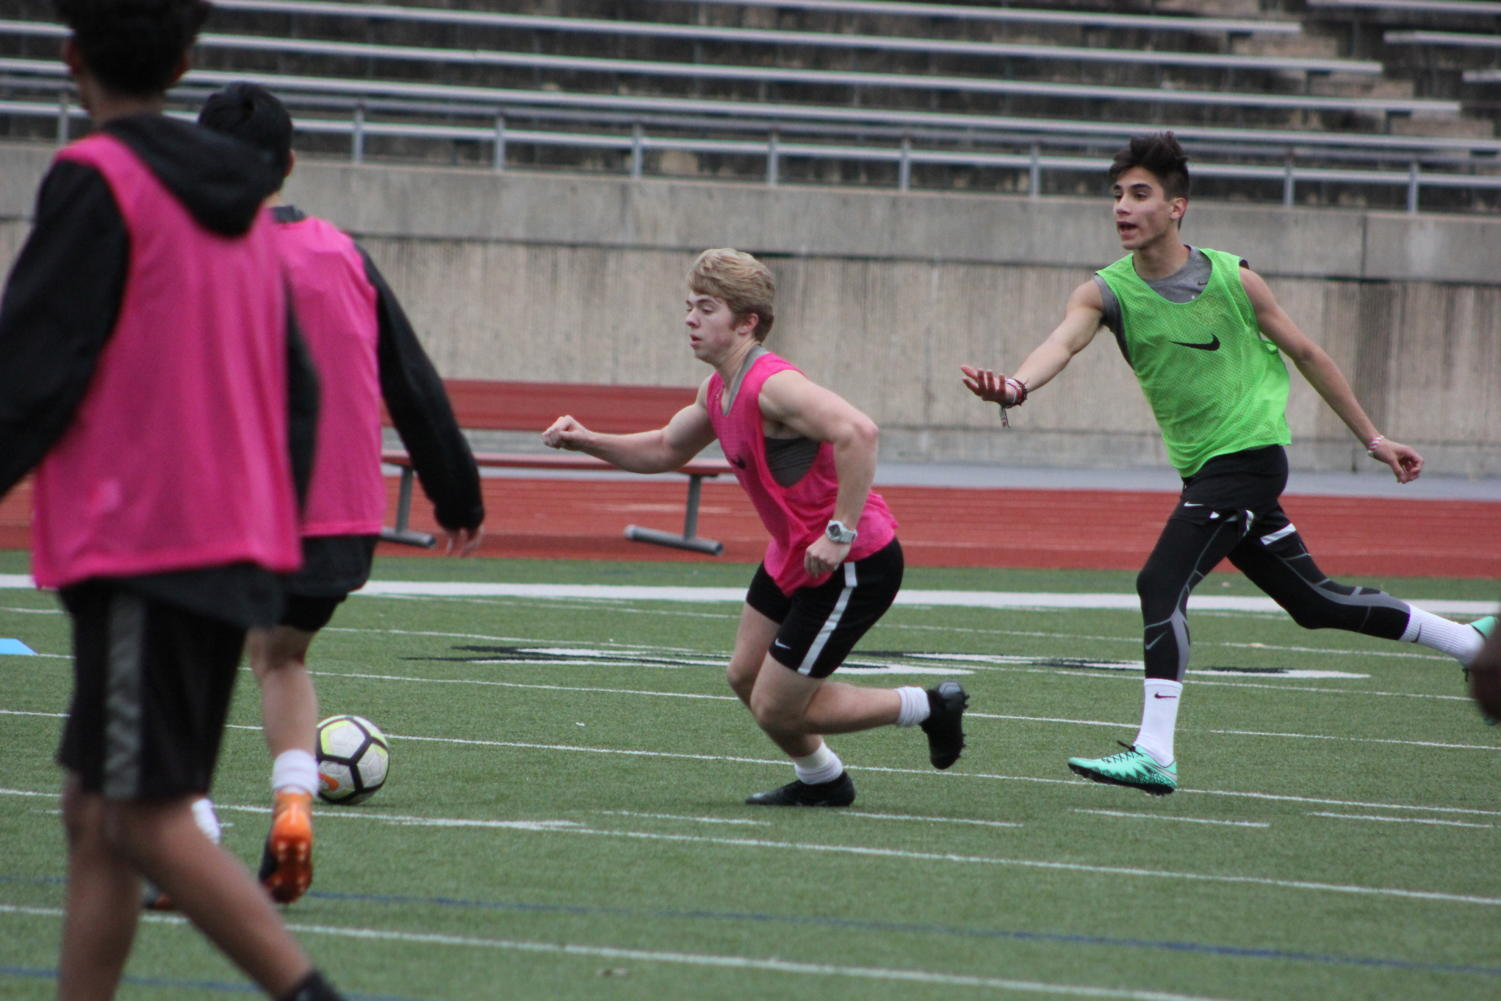 Coppell High School seniors Blake Bartlett, and Jacob Vasquez scrimmage against each other during practice before school on Buddy Echols Field on Dec. 17. The Cowboys soccer teams first game is Dec. 28th against Sam Houston at Buddy Echols Field at 2:00pm